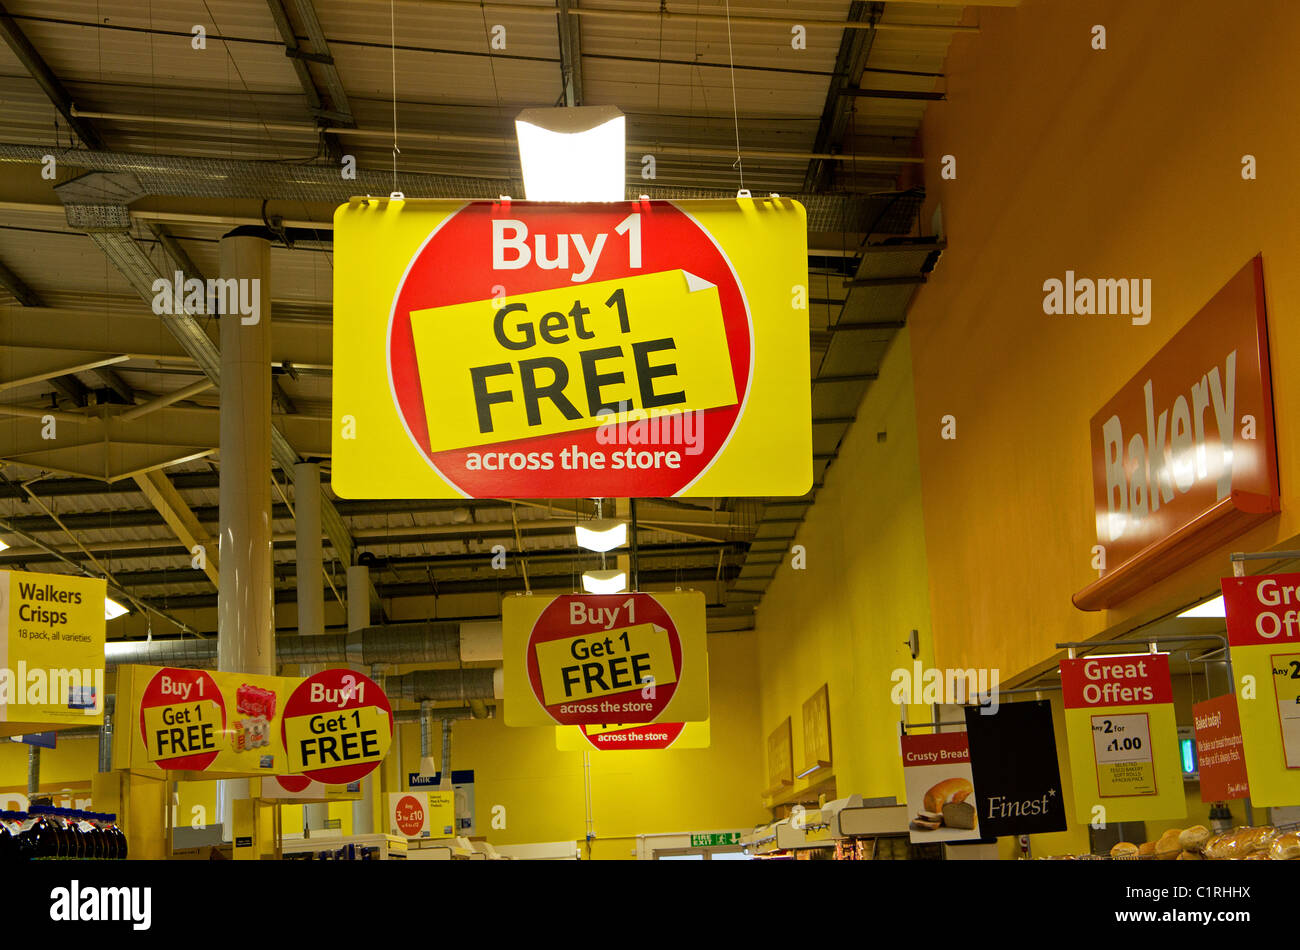 Buy 1 Get 1 free posters in a Tesco supermarket, UK - Stock Image